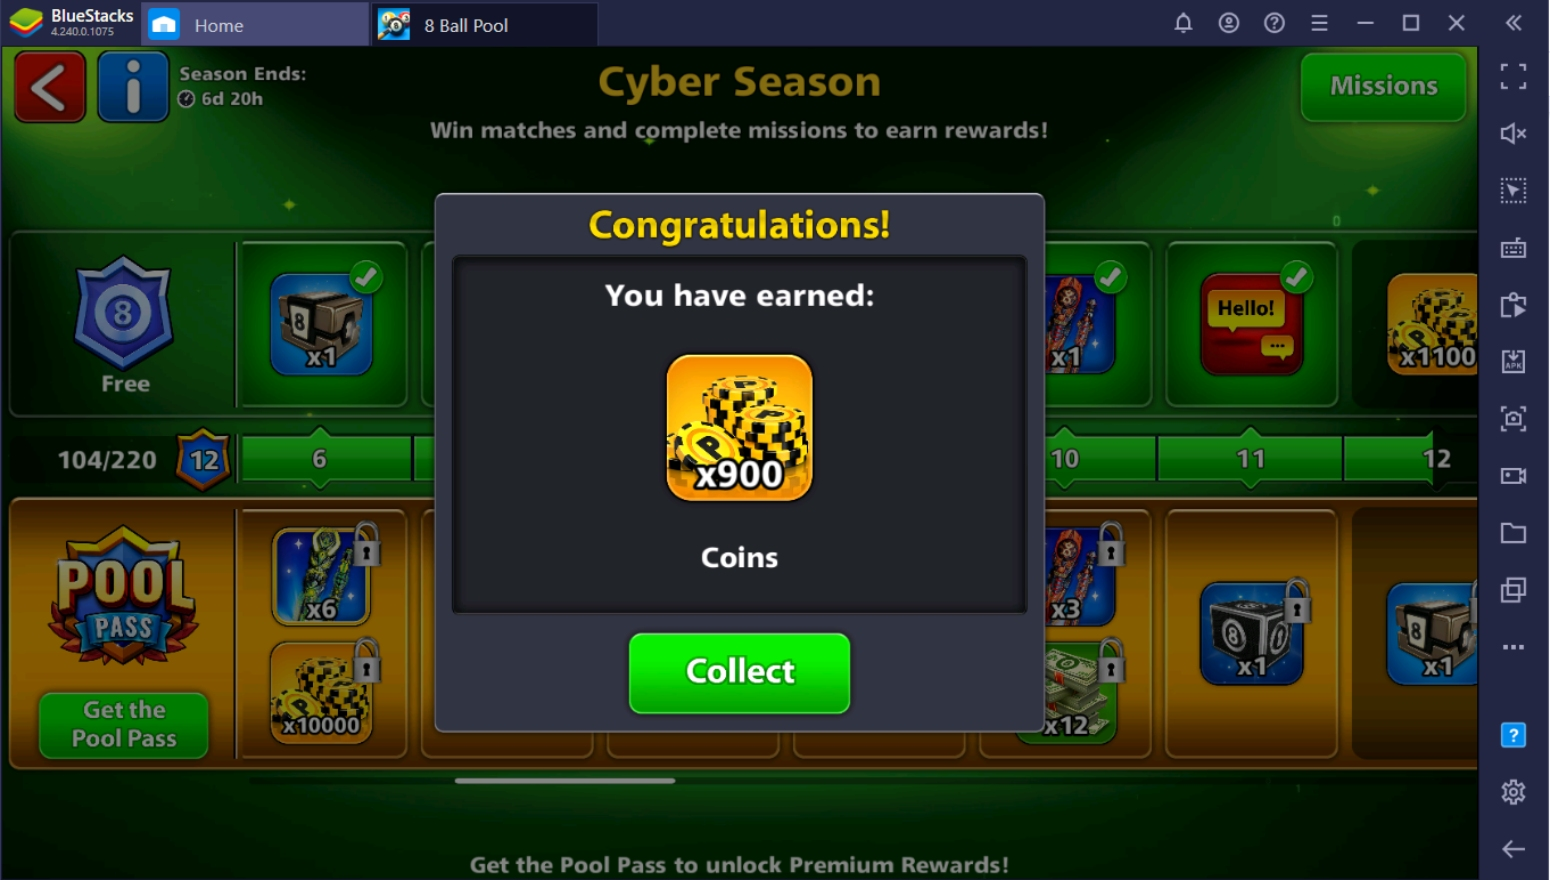 Fastest Way to Earn Coins in 8 Ball Pool on PC with BlueStacks